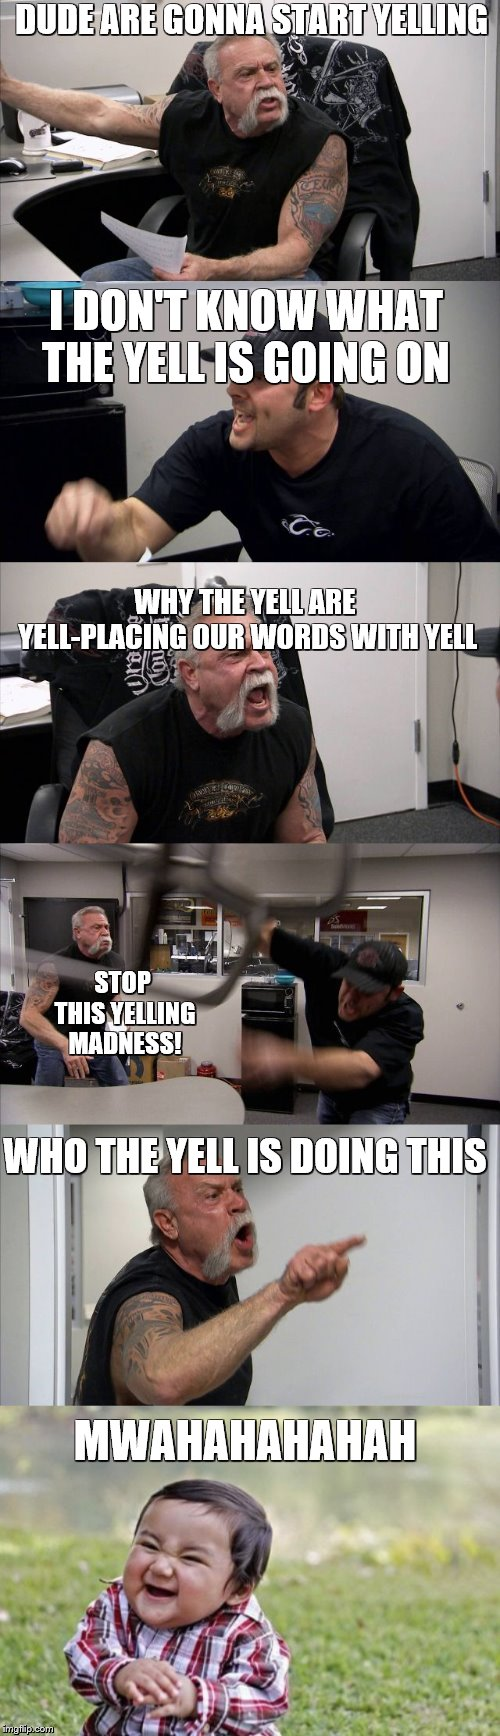 Who Is Doing This? |  DUDE ARE GONNA START YELLING; I DON'T KNOW WHAT THE YELL IS GOING ON; WHY THE YELL ARE YELL-PLACING OUR WORDS WITH YELL; STOP THIS YELLING MADNESS! WHO THE YELL IS DOING THIS; MWAHAHAHAHAH | image tagged in evil toddler,american chopper argument,yelling,bad puns are bad,what the hell,stop it | made w/ Imgflip meme maker